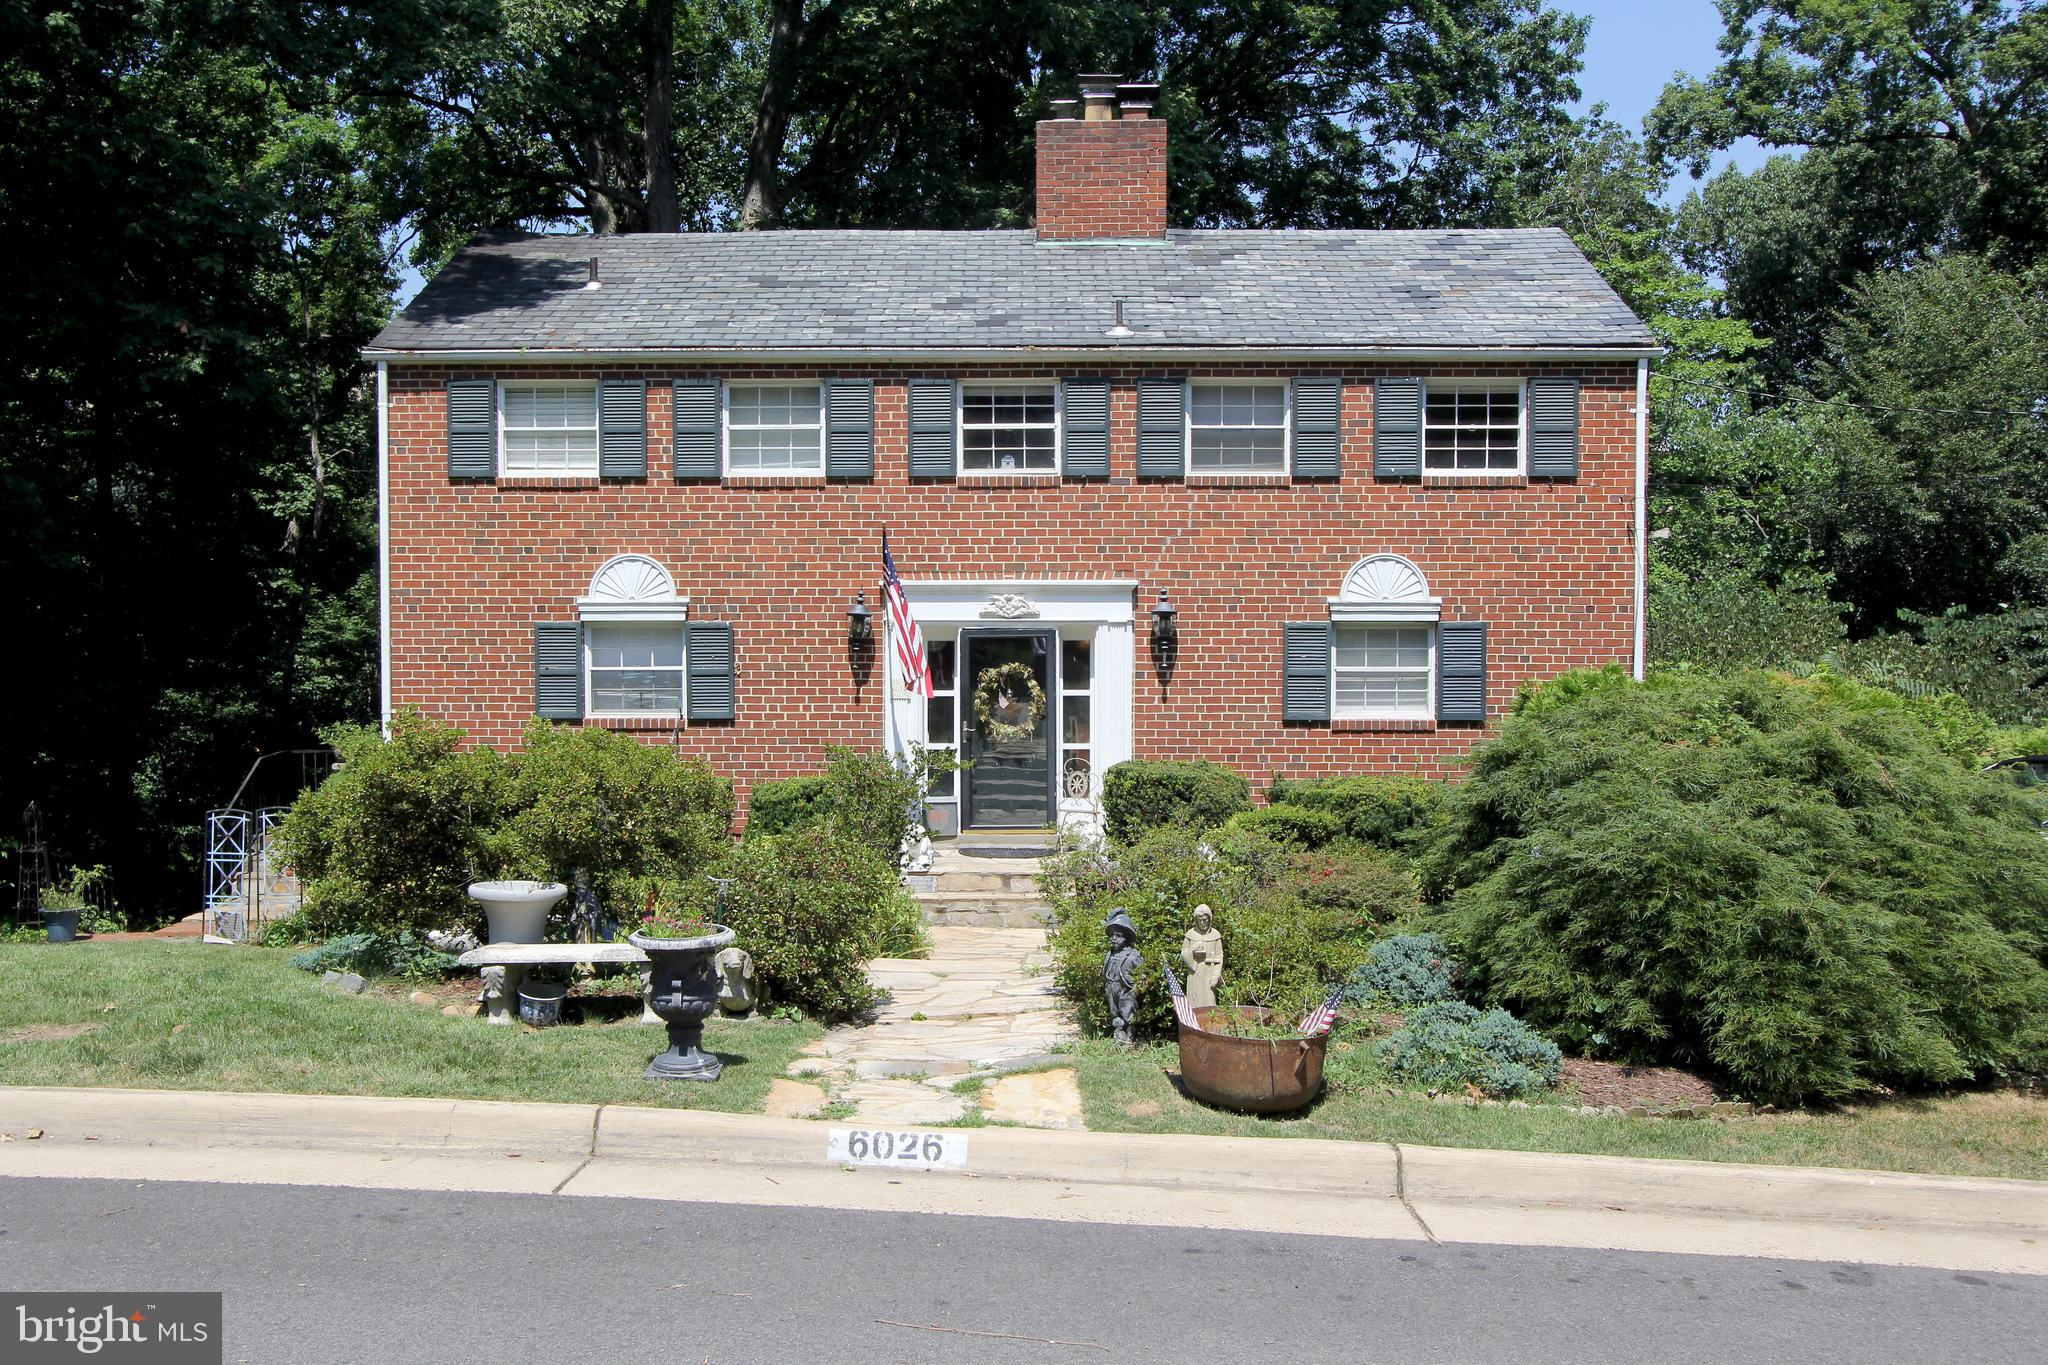 WONDERFUL, UNIQUE BRICK COLONIAL IN CONVENIENT & DESIRABLE BELLE HAVEN, WAS DESIGNED AND BUILT BY A FAMOUS ARCHITECT FOR HIMSELF. FEATURING 3-4 BEDROOMS, 2 1/2 BATHROOMS, BIG FAMILY ROOM WITH HIGH TWO STORY WOOD CEILING, FORMAL DINING ROOM, HARDWOOD FLOORS, LARGE SUNNY  WINDOWS, AND MORE.